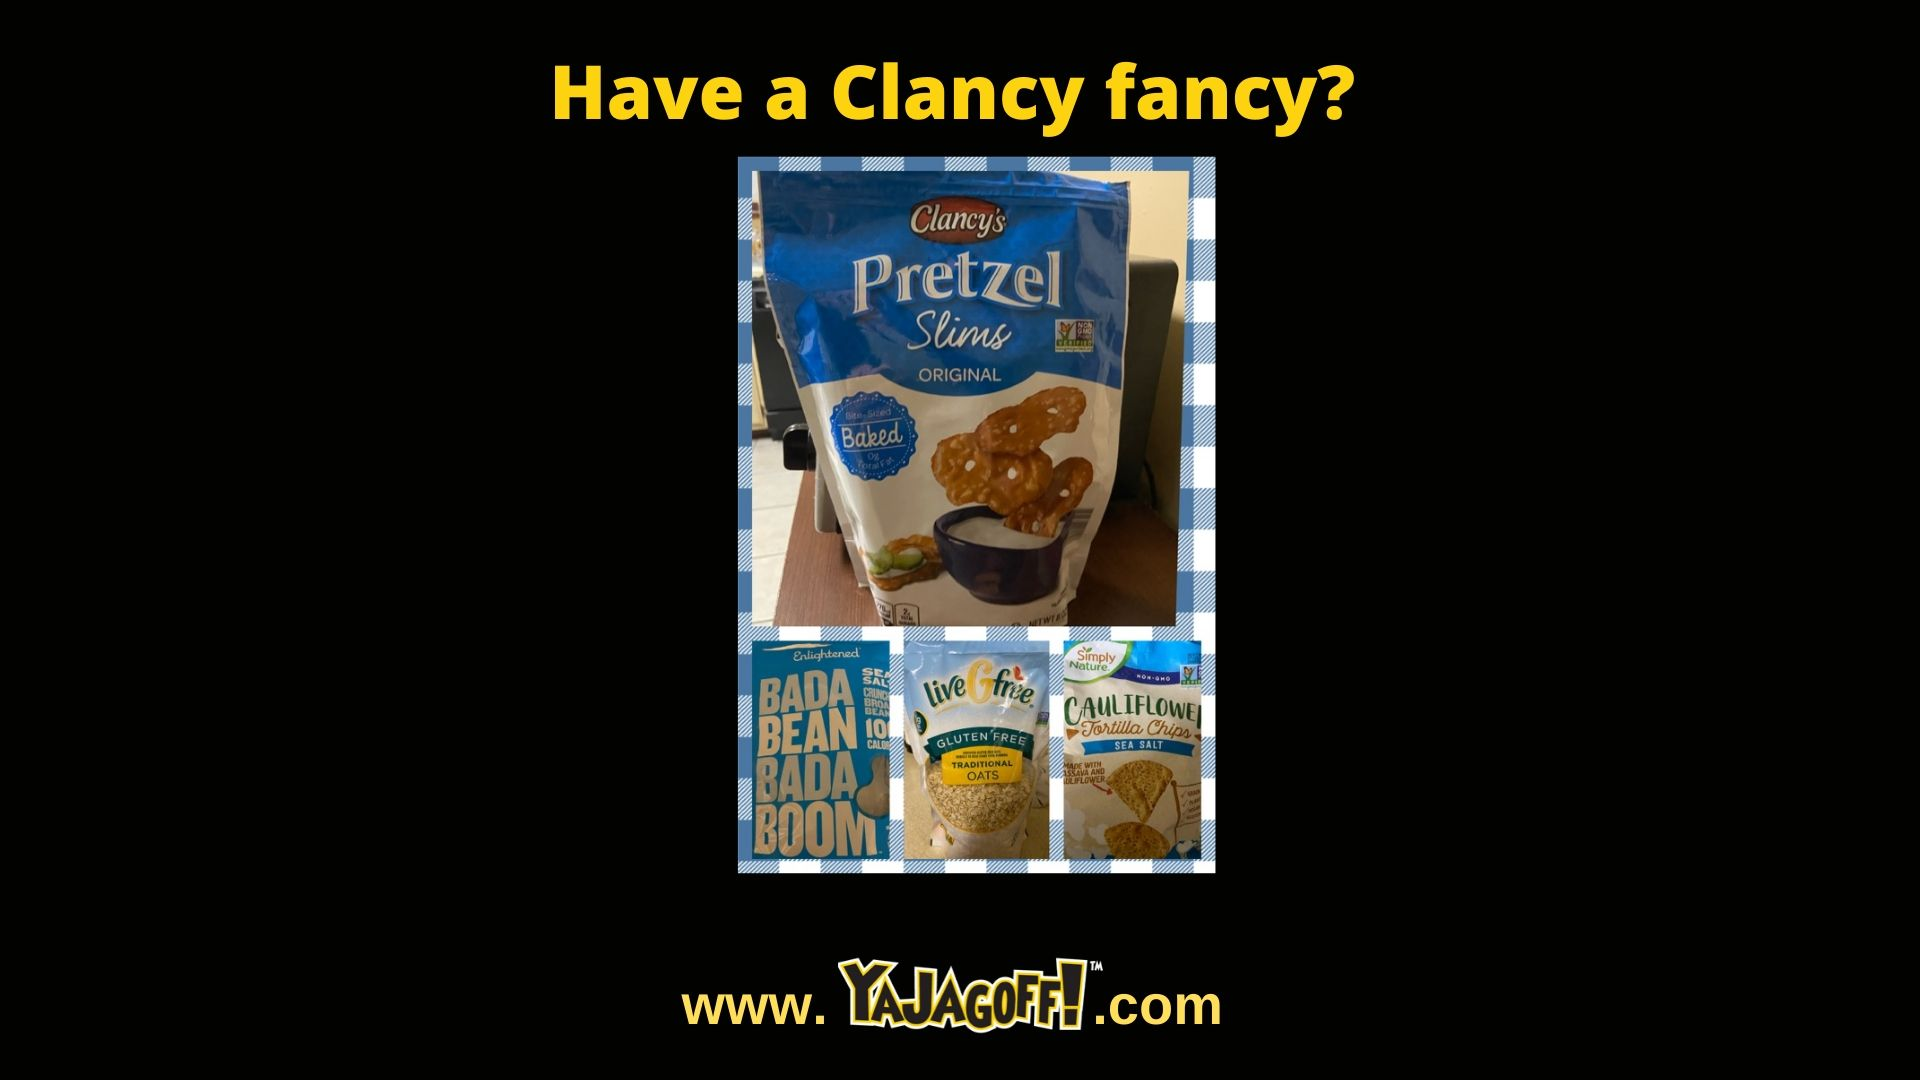 YaJagoff Blog covers Aldi's Clancy brand